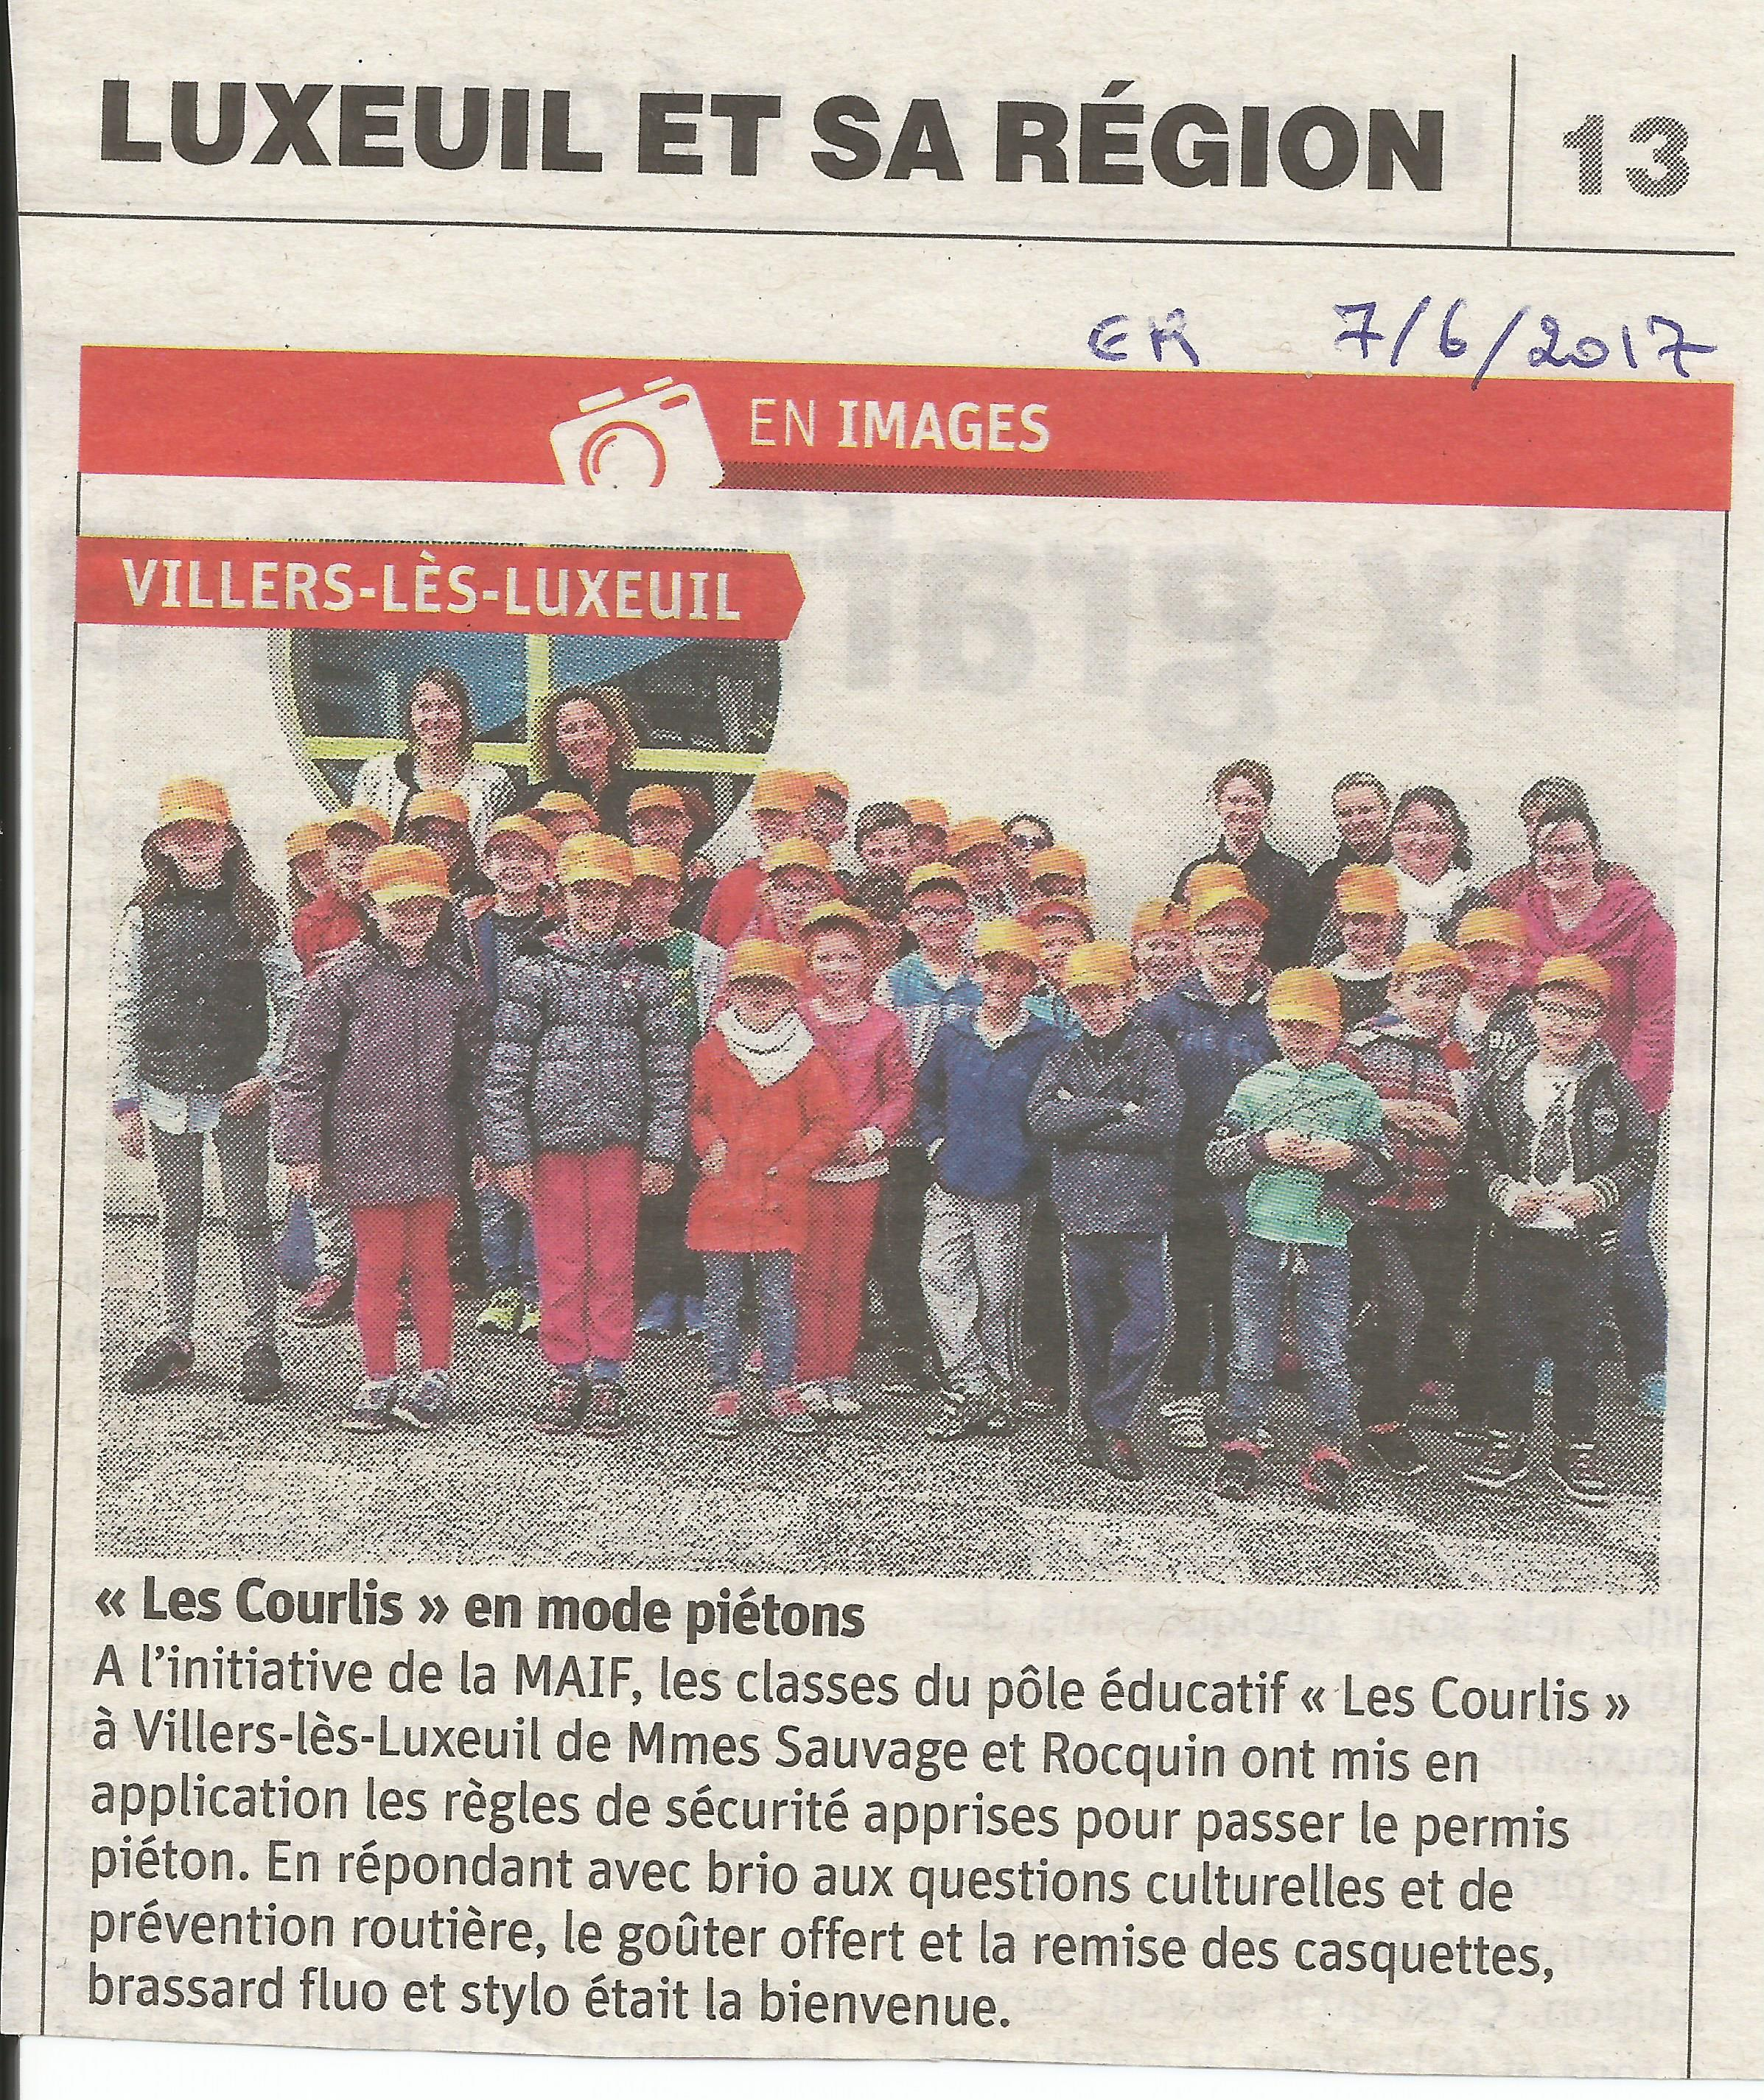 https://www.villers-les-luxeuil.com/projets/villers/files/images/2017_Mairie/Presse/2017_06_07.jpg